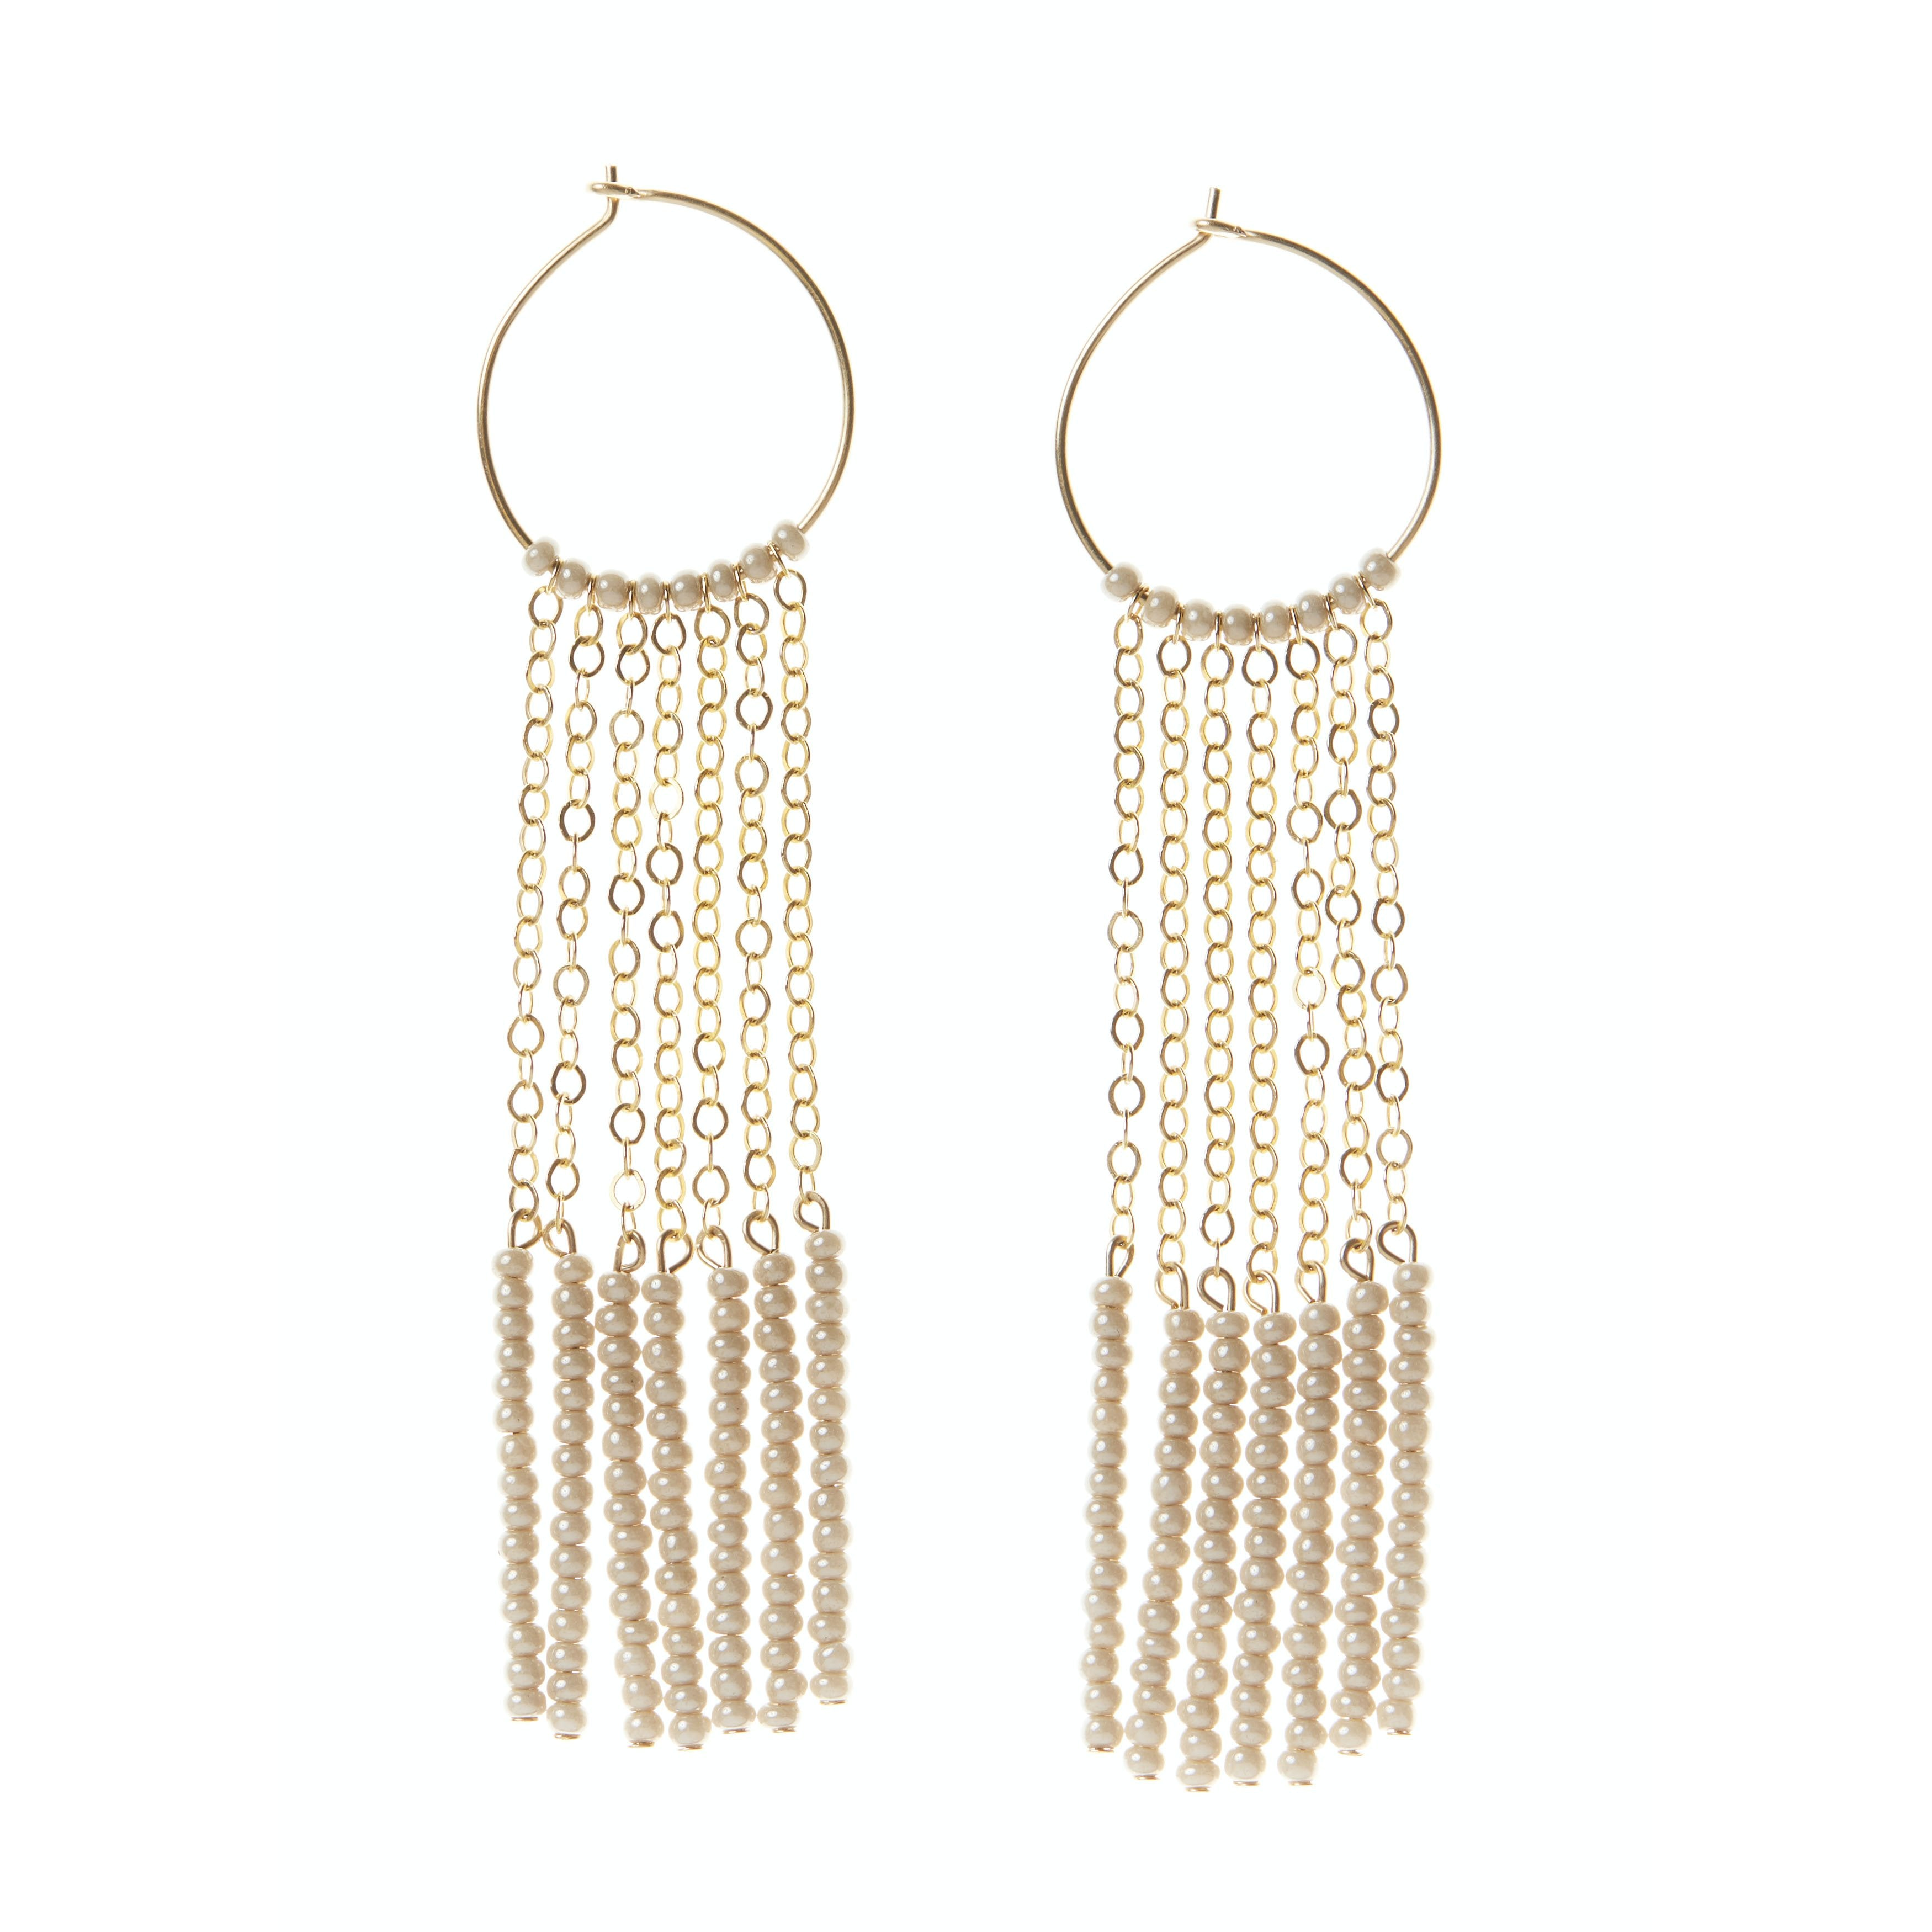 7 TASSEL XS HOOP EARRINGS by Sidai Designs at SARZA. 7 tassel XS hoop earrings, hoop earrings, jewellery, jewelry, Kisongo Collection, Sidai Designs